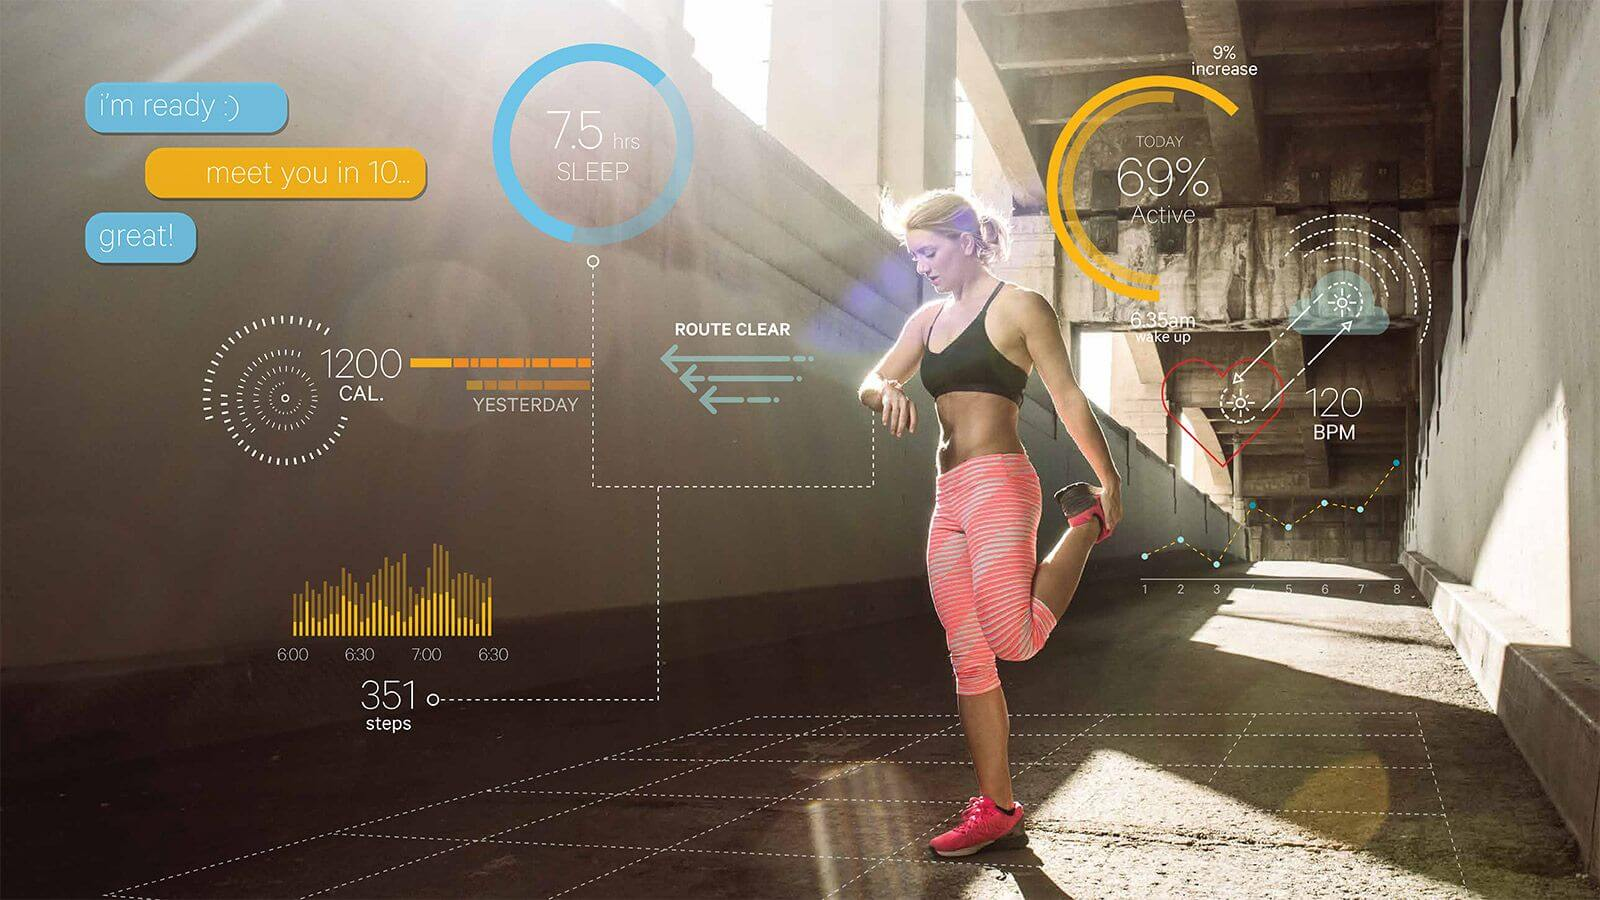 fitness devices can trace employee health